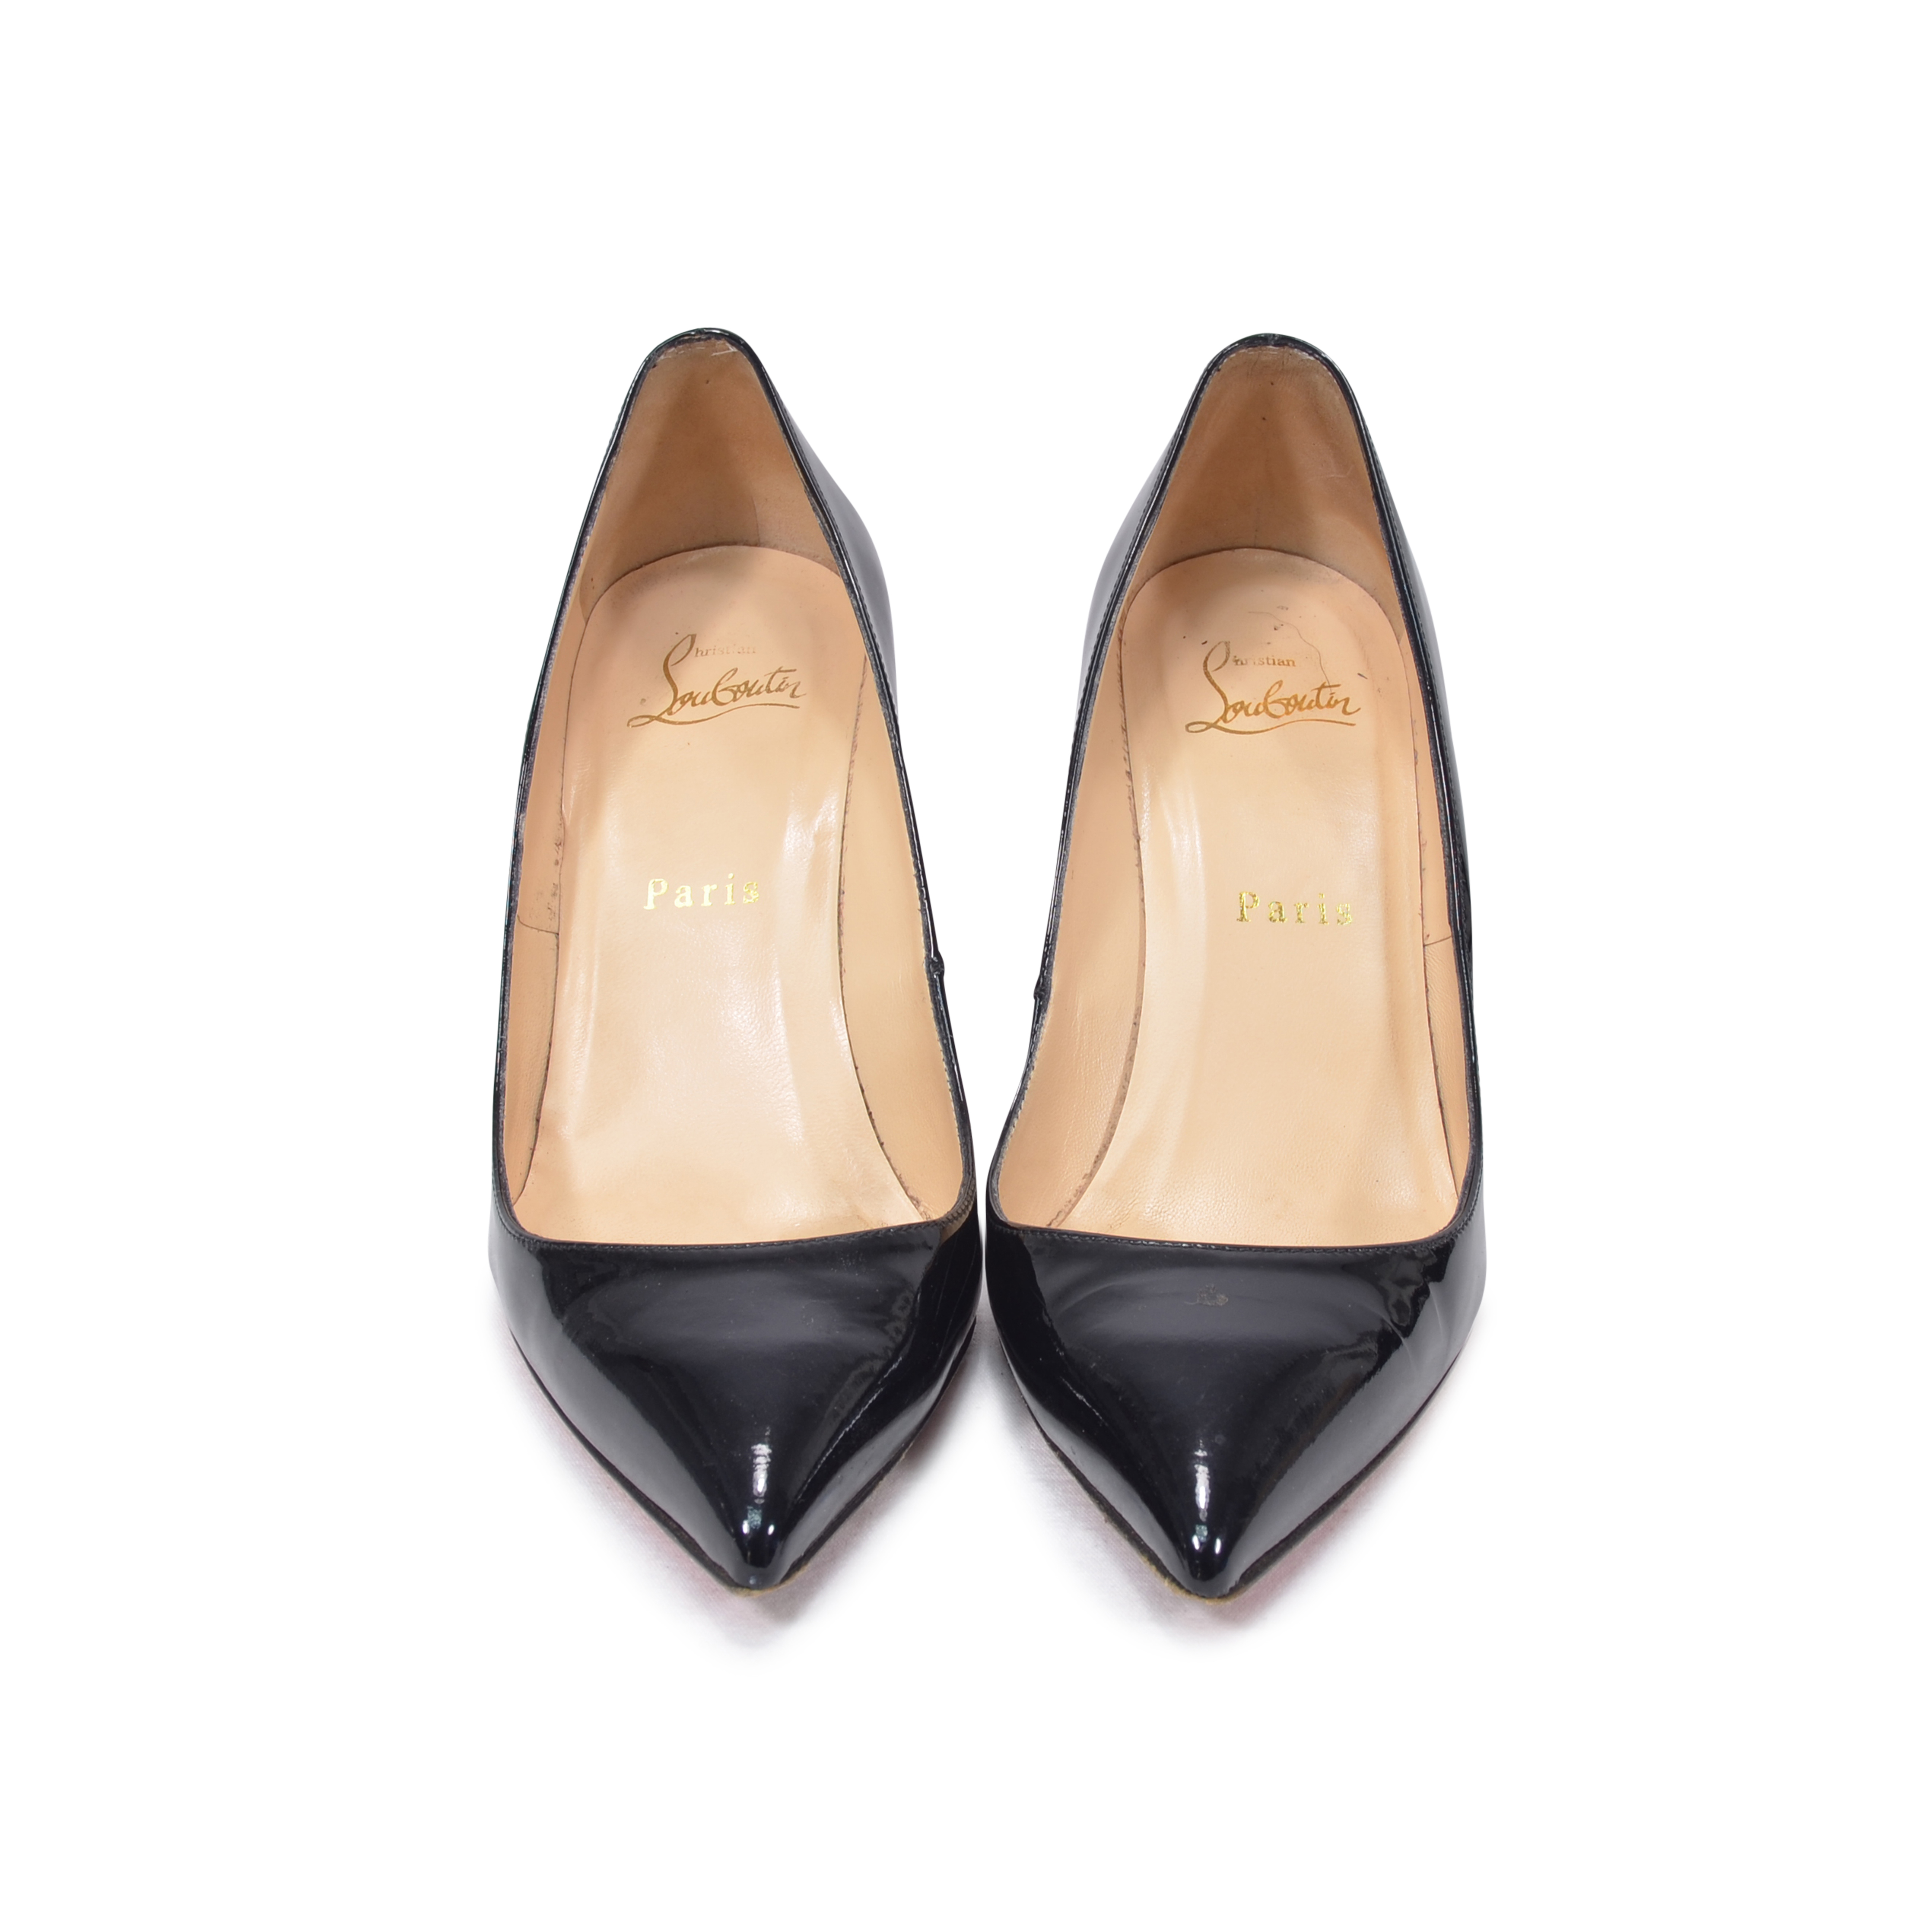 aeddf3db0d76 Authentic Second Hand Christian Louboutin Pigalle 85 Patent Pumps  (PSS-342-00003)